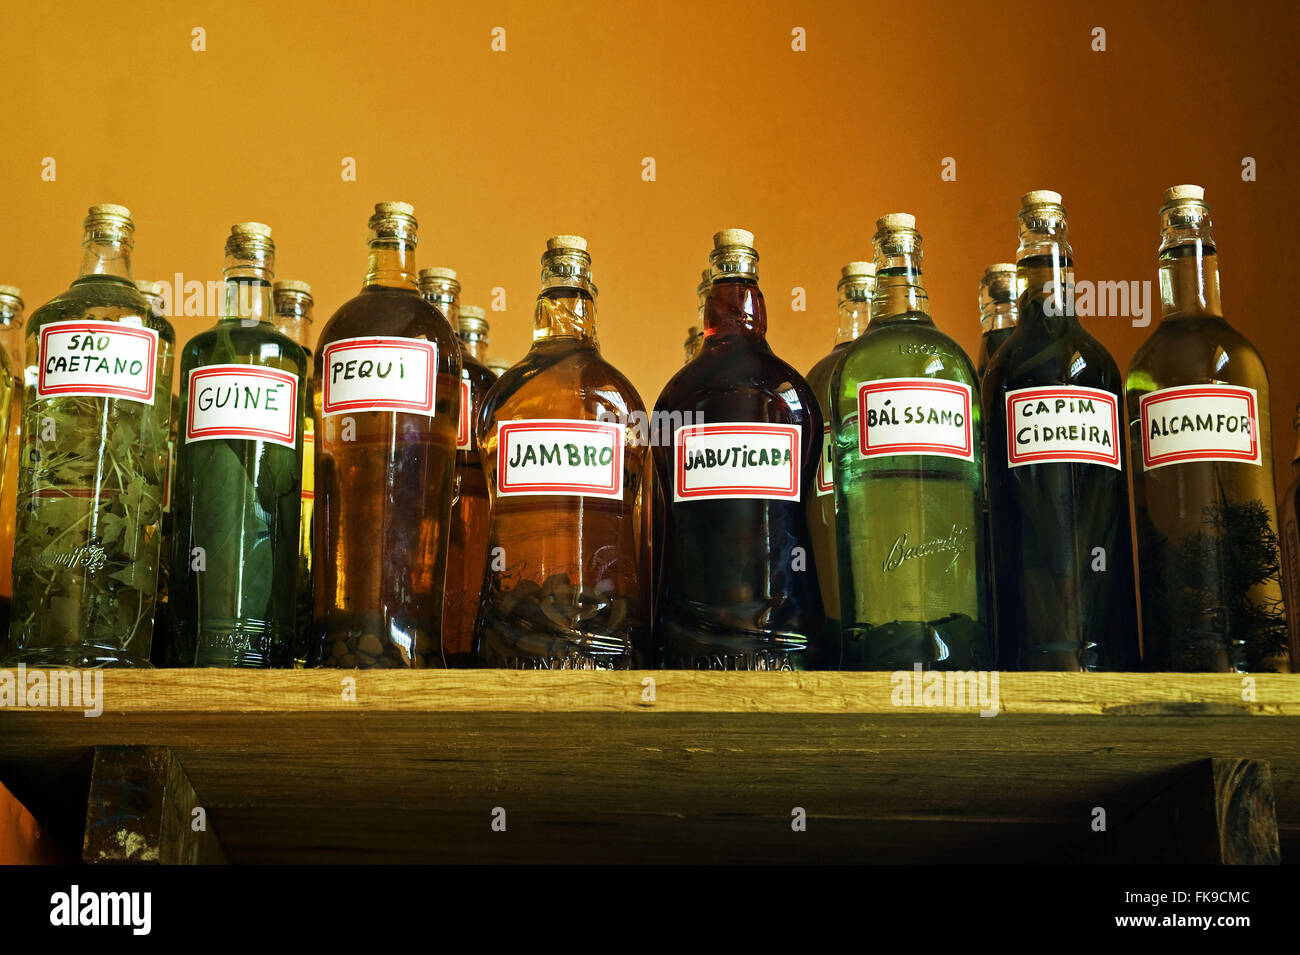 Store shelf with bottles of rum tanned using herbs typical of the cerrado - Stock Image